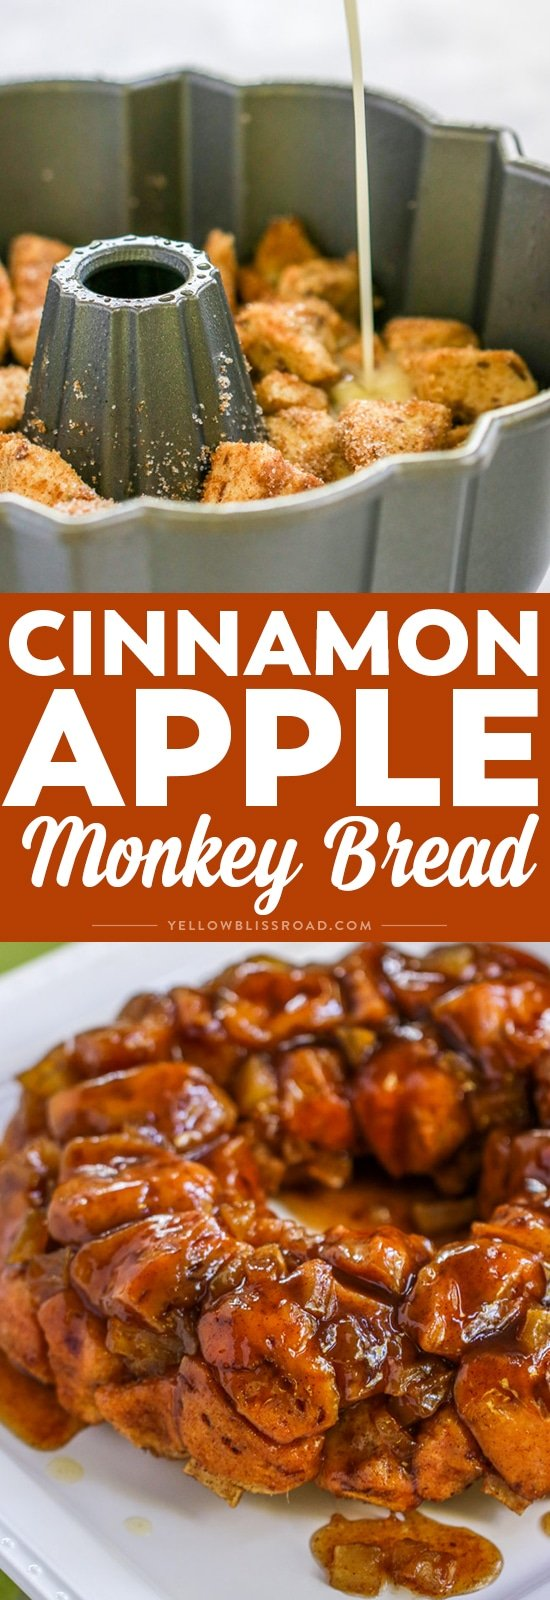 This Cinnamon Apple Monkey Bread is the perfect combination of fall flavors packed in a decadent breakfast treat!